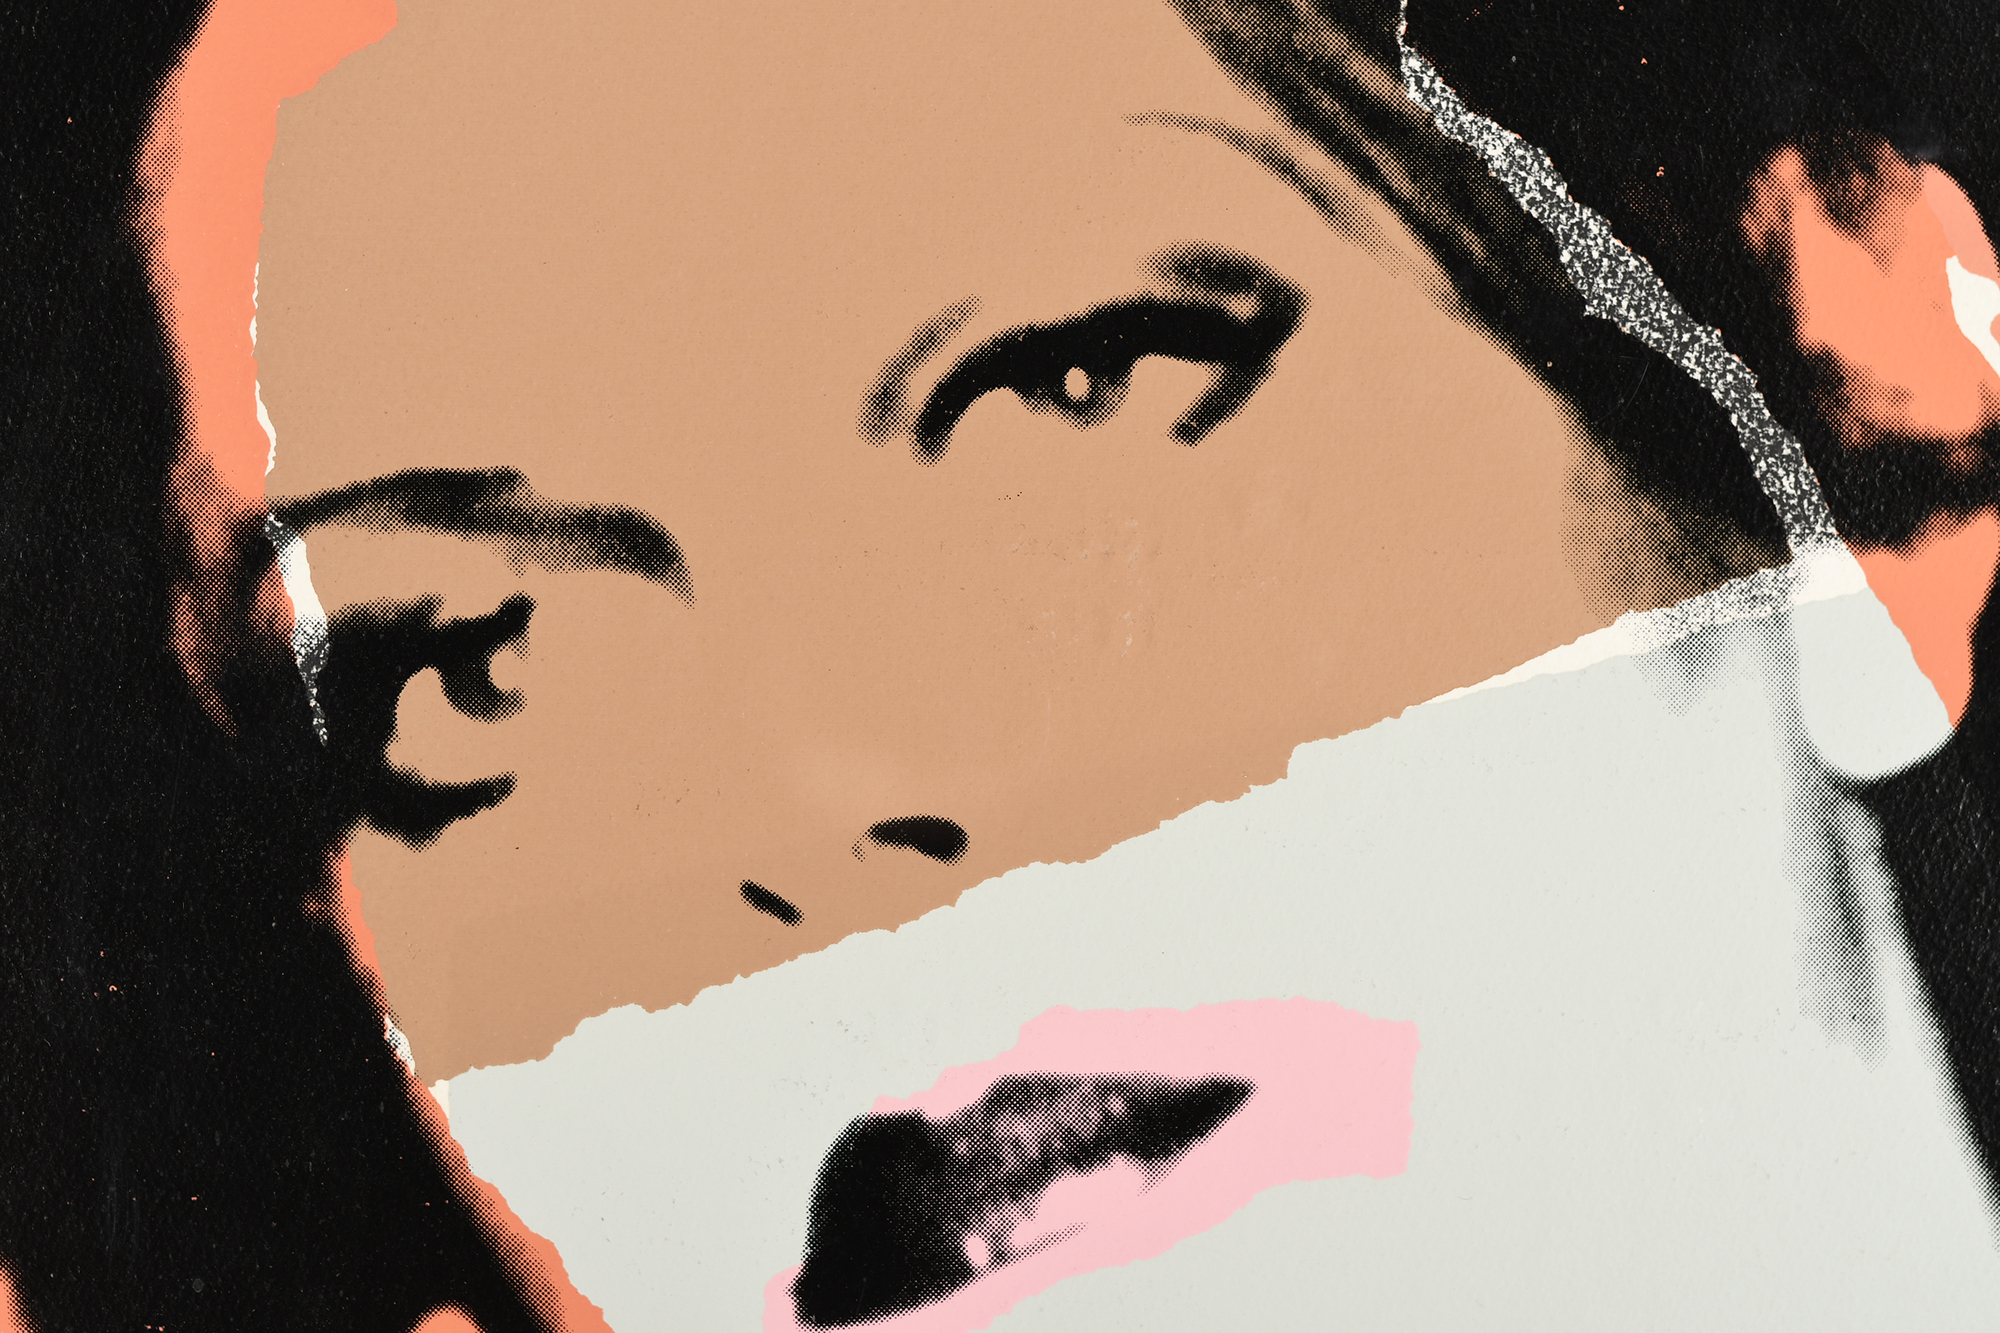 """Rare Signed Andy Warhol Limited Edition Silkscreen Titled """"Ladies and Gentlemen"""" - Image 3 of 15"""